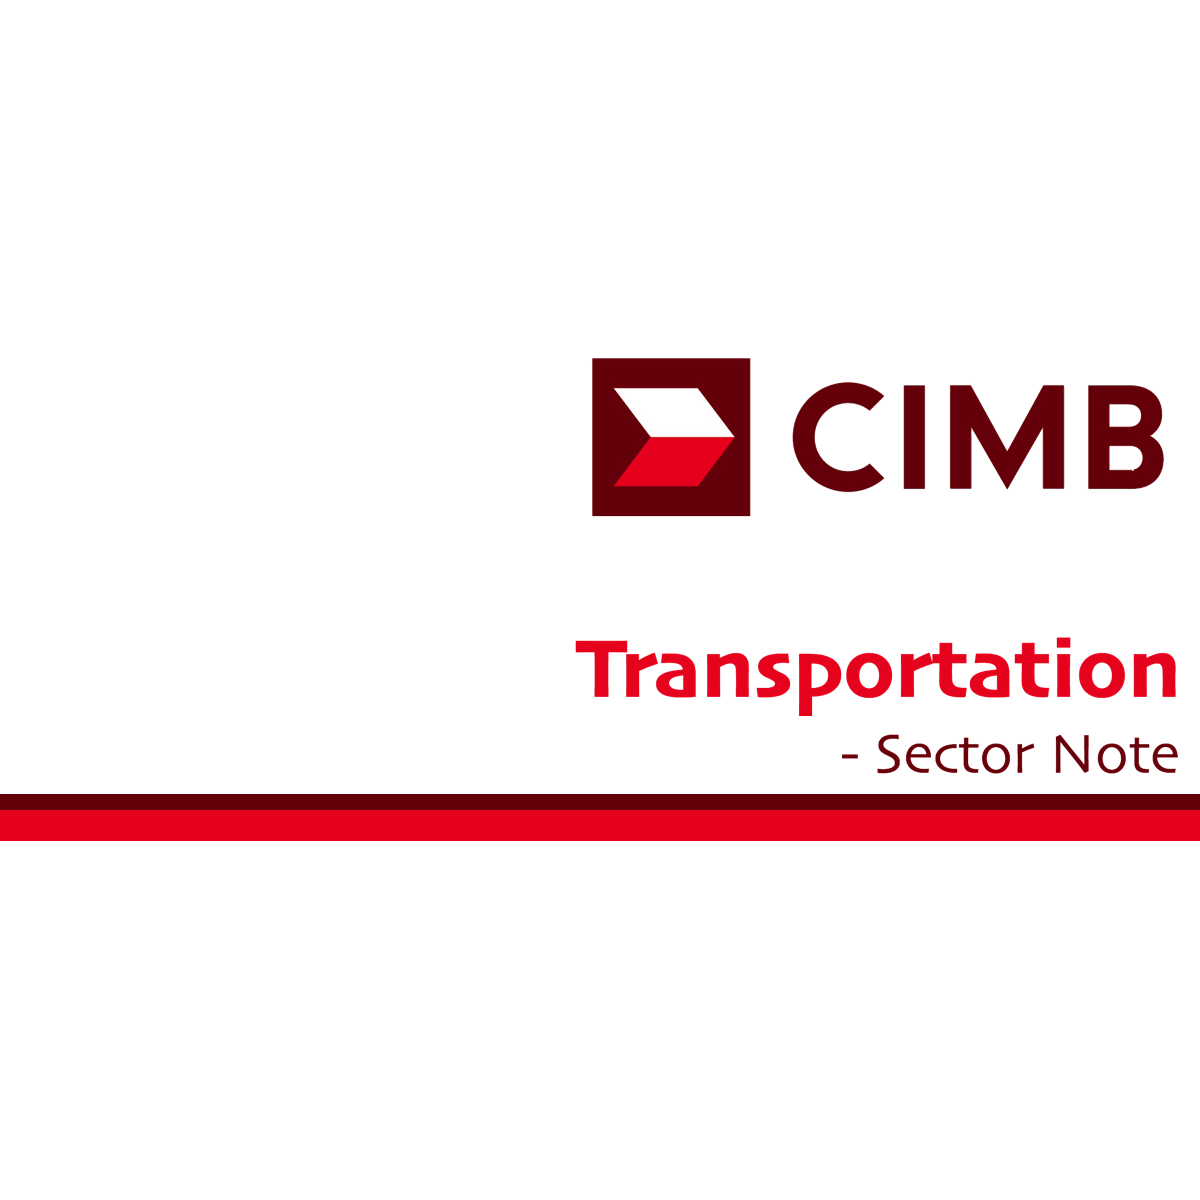 Navigating Singapore ~ Transport and airport services - CIMB Research 2016-12-05: Neutral